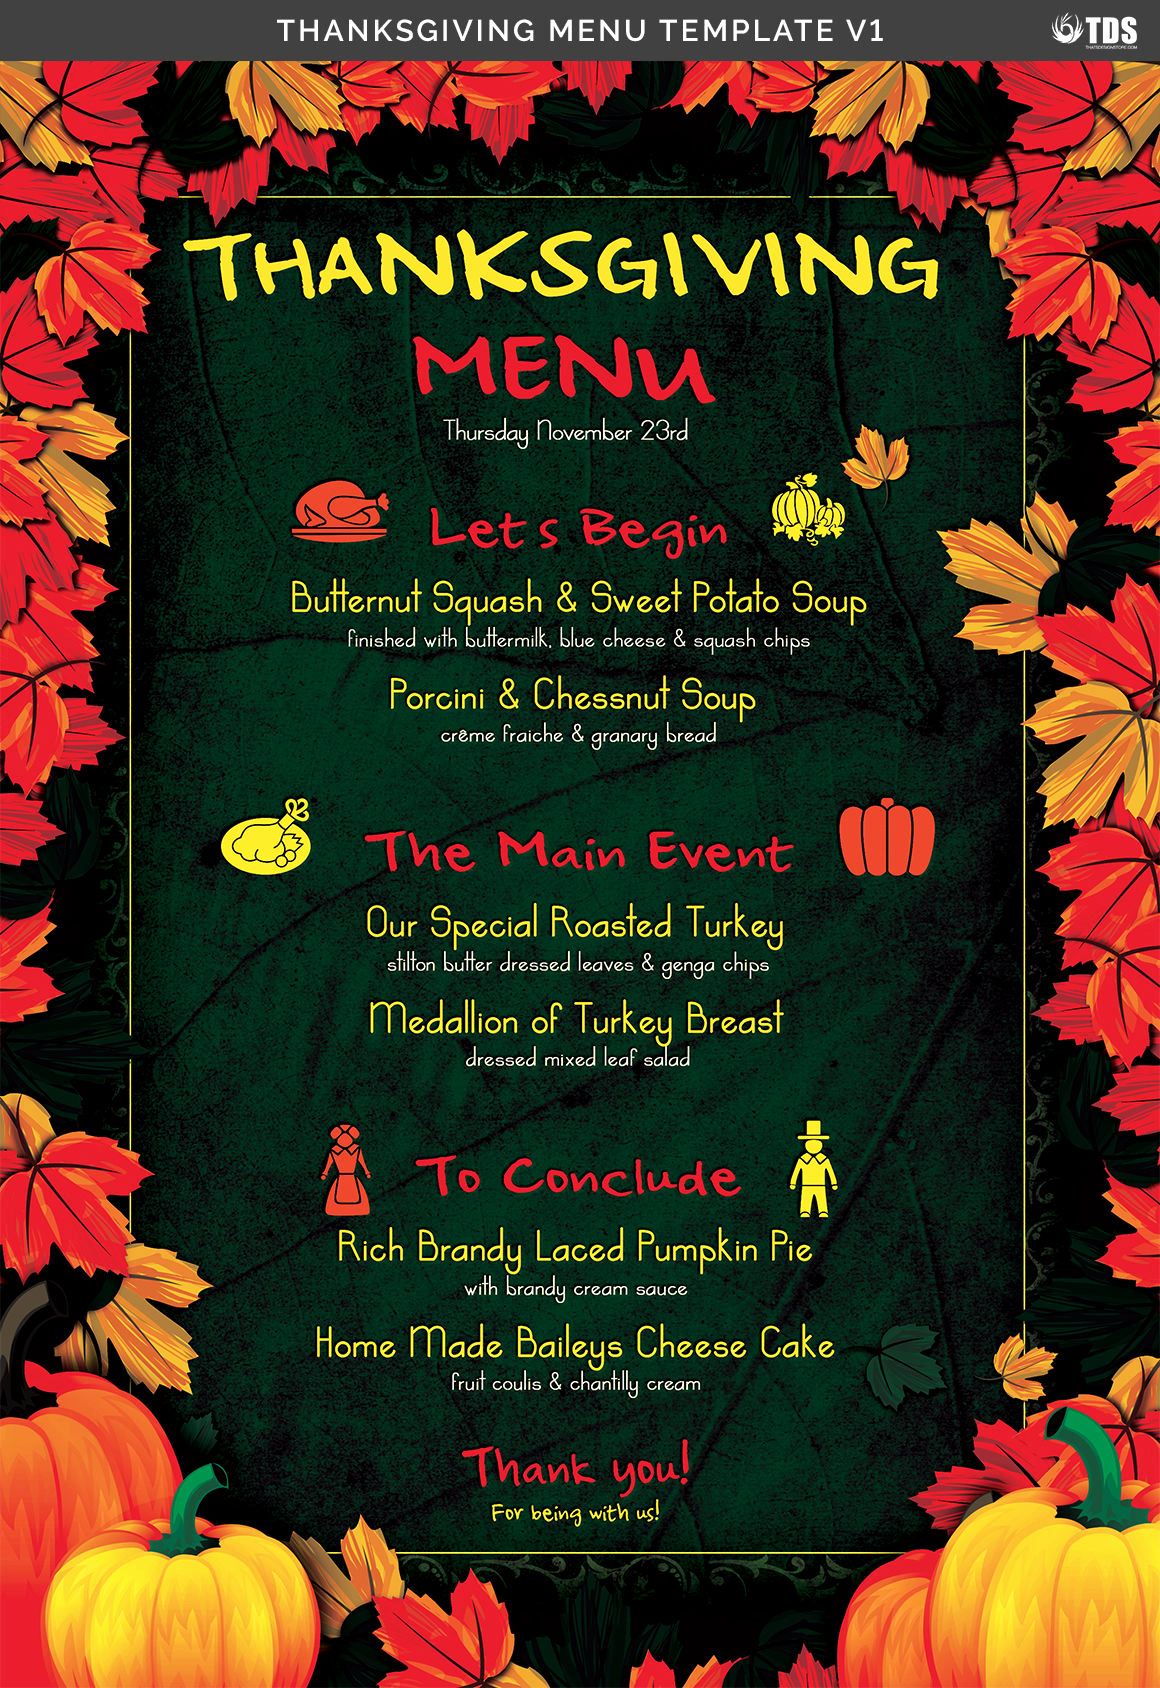 Thanksgiving Day Menu Template Unique Thanksgiving Menu Template V1 by thats Design Store